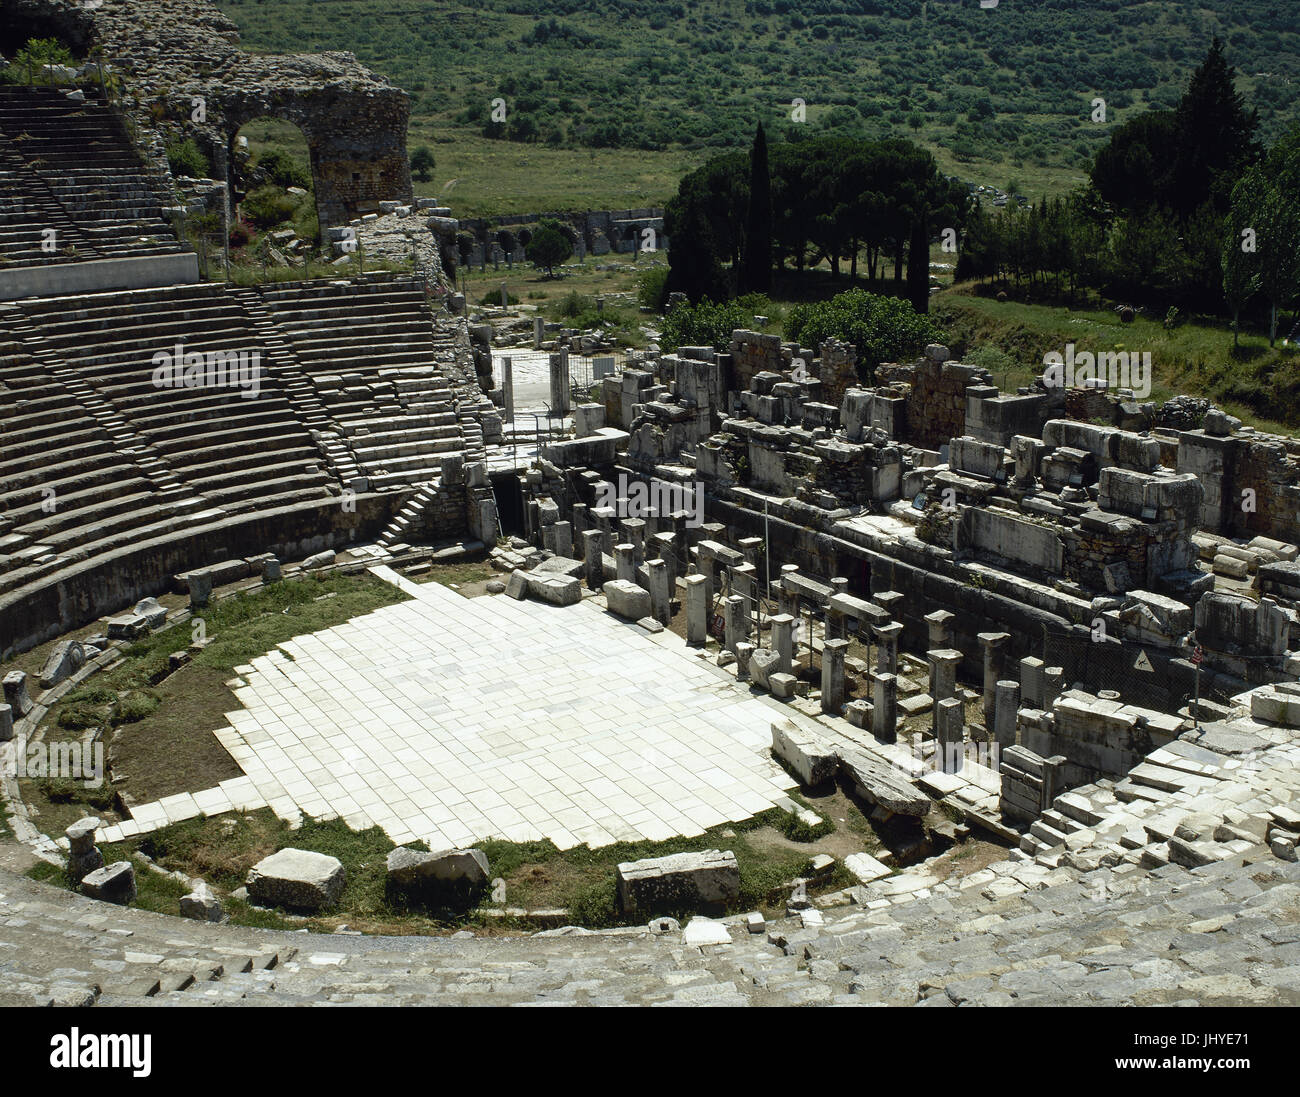 Turkey. Ephesus. Ancient Greek city on the coast of Ionia. View of Grand Theater. Hellenistic period and remodeled - Stock Image